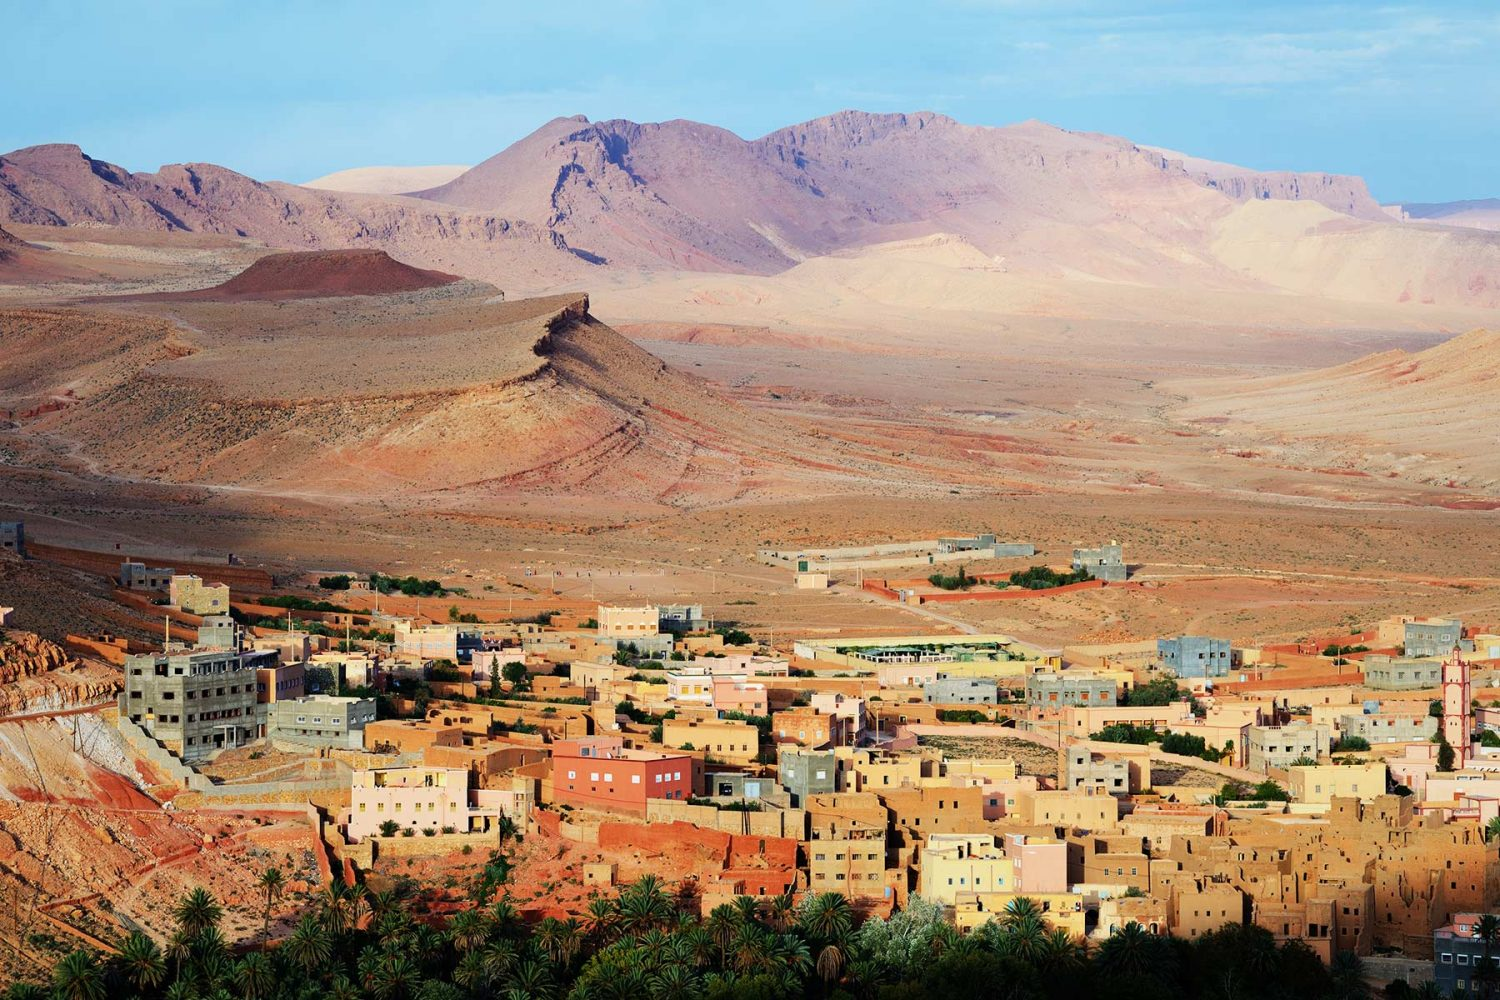 Morocco City Tinghir in the Atlas Mountains